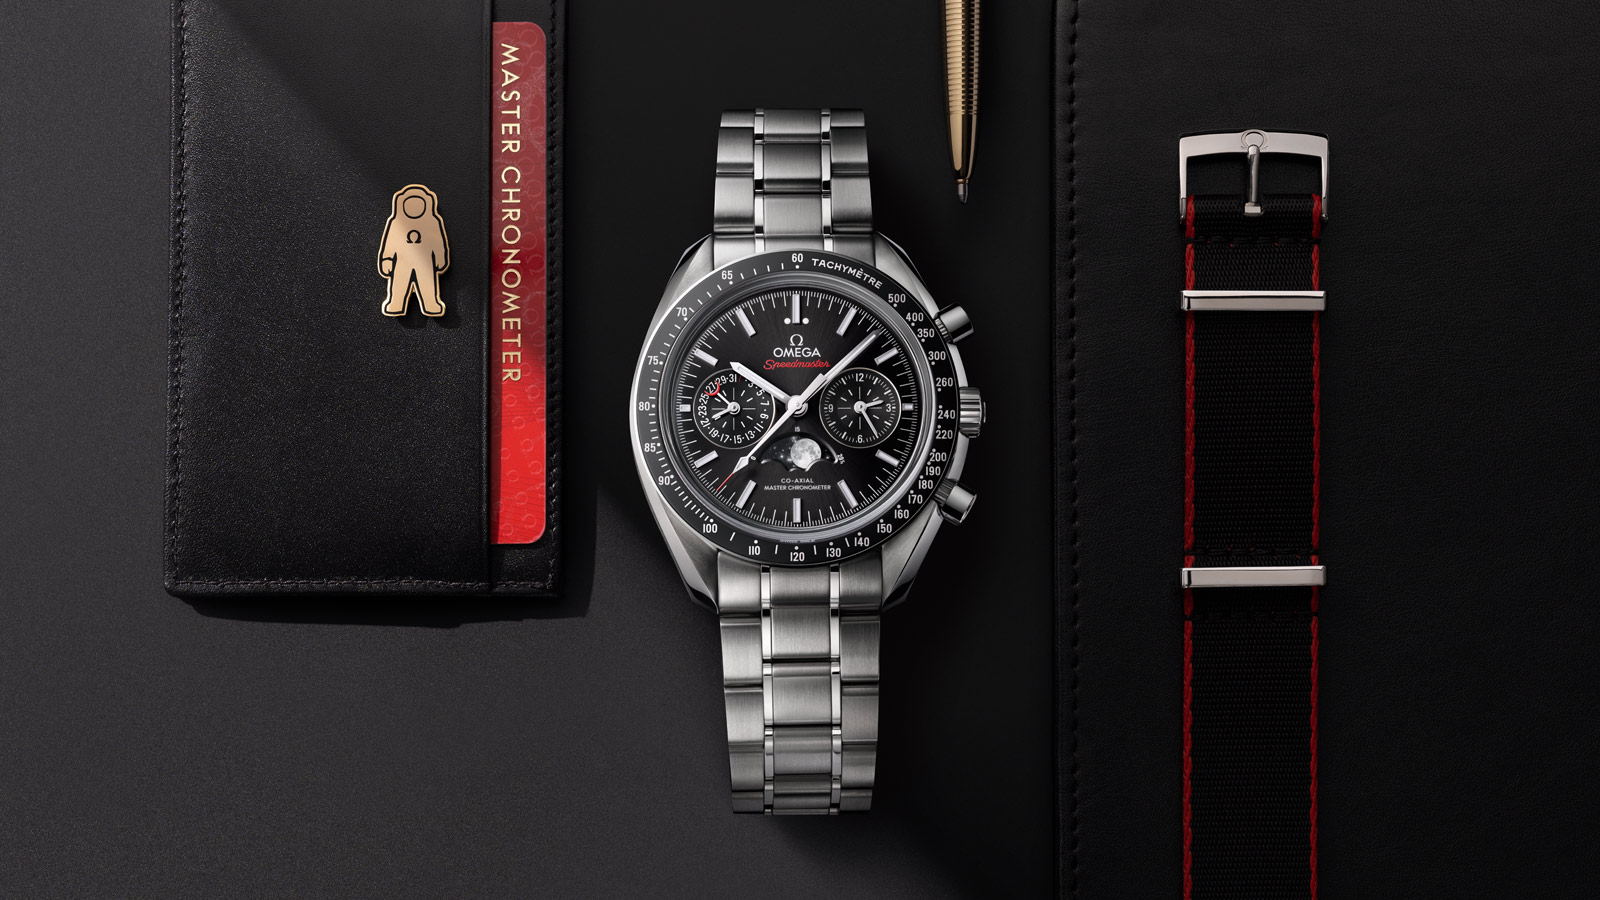 Speedmaster ムーンウォッチ Moonwatch Omega Co‑Axial Master Chronometer Moonphase Chronograph 44.25 mm ウォッチ - 304.30.44.52.01.001